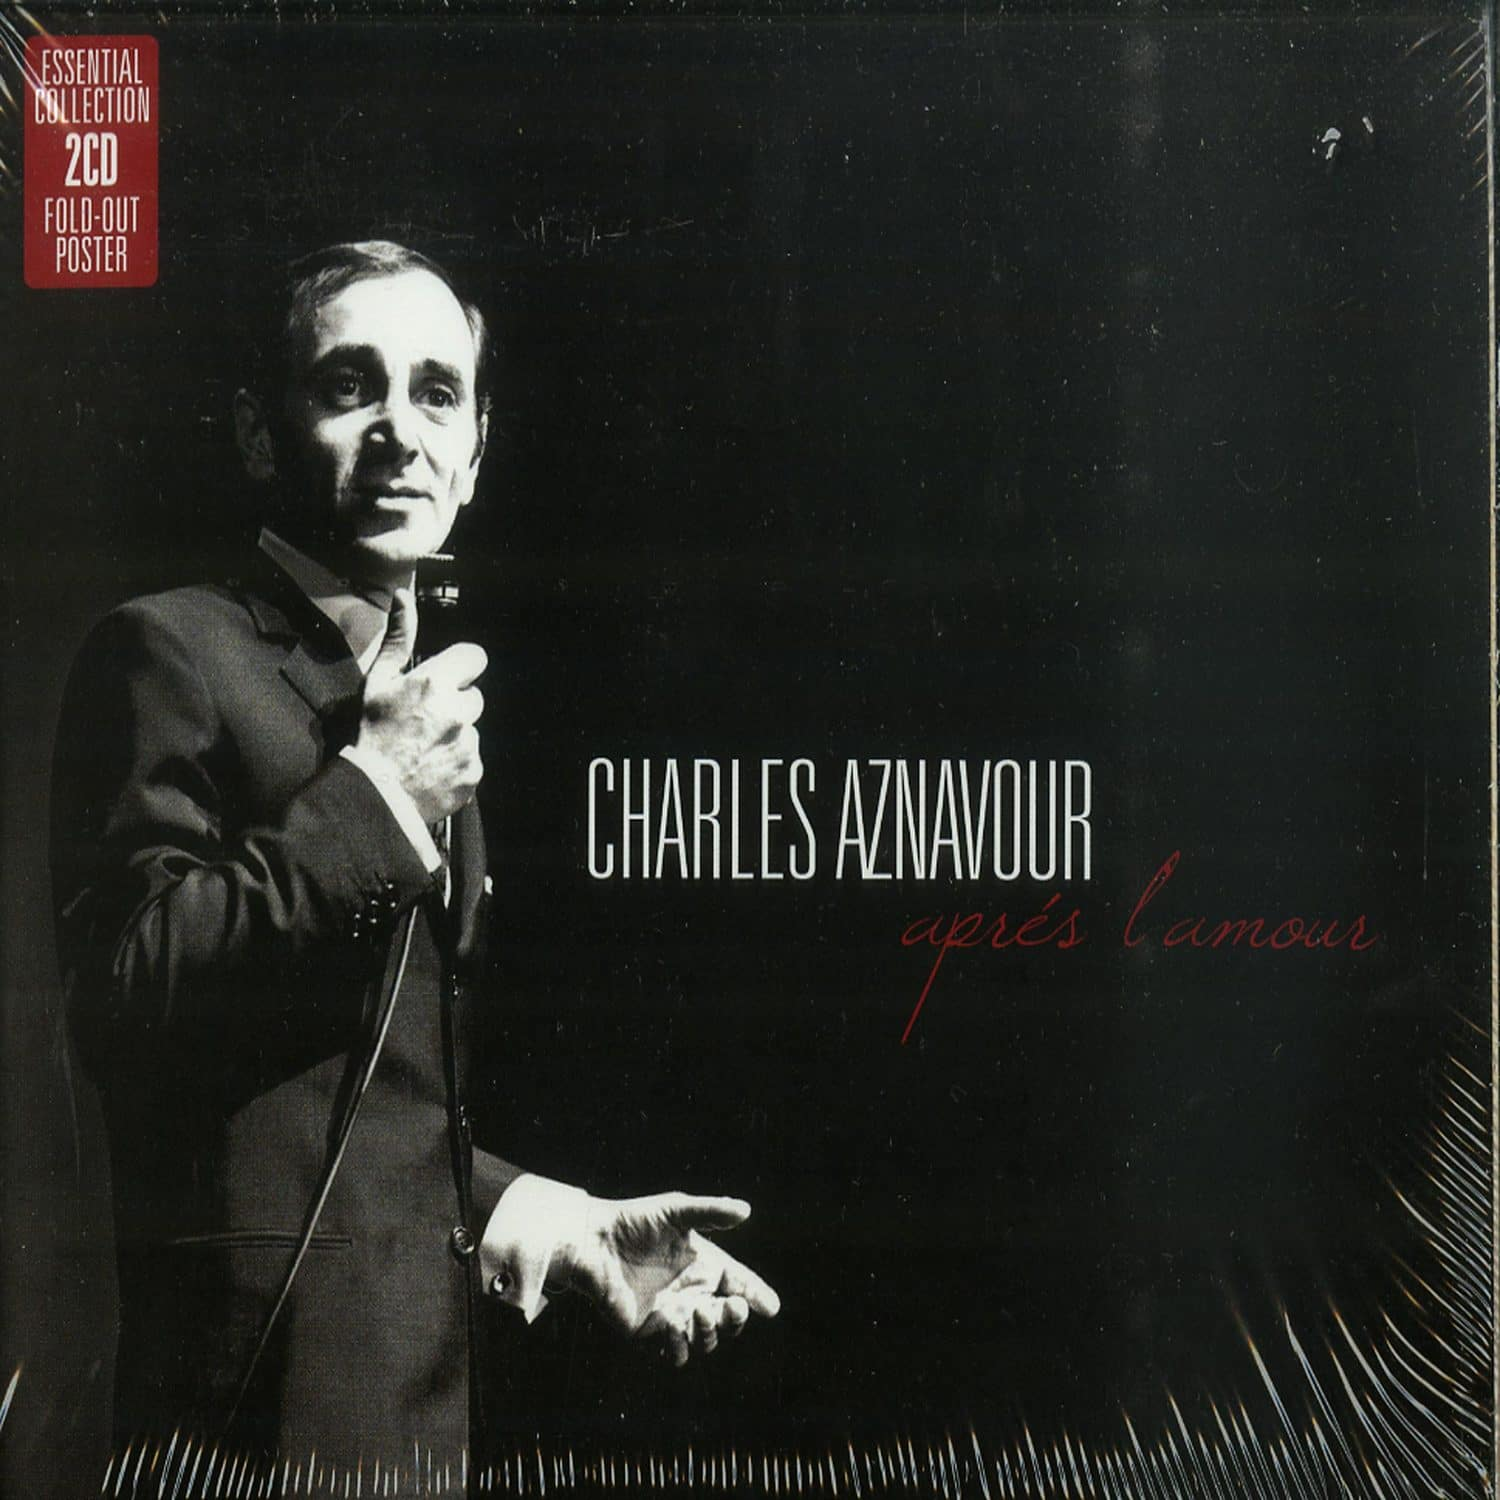 Charles Aznavour - APRES L AMOUR - ESSENTIAL COLLECTION